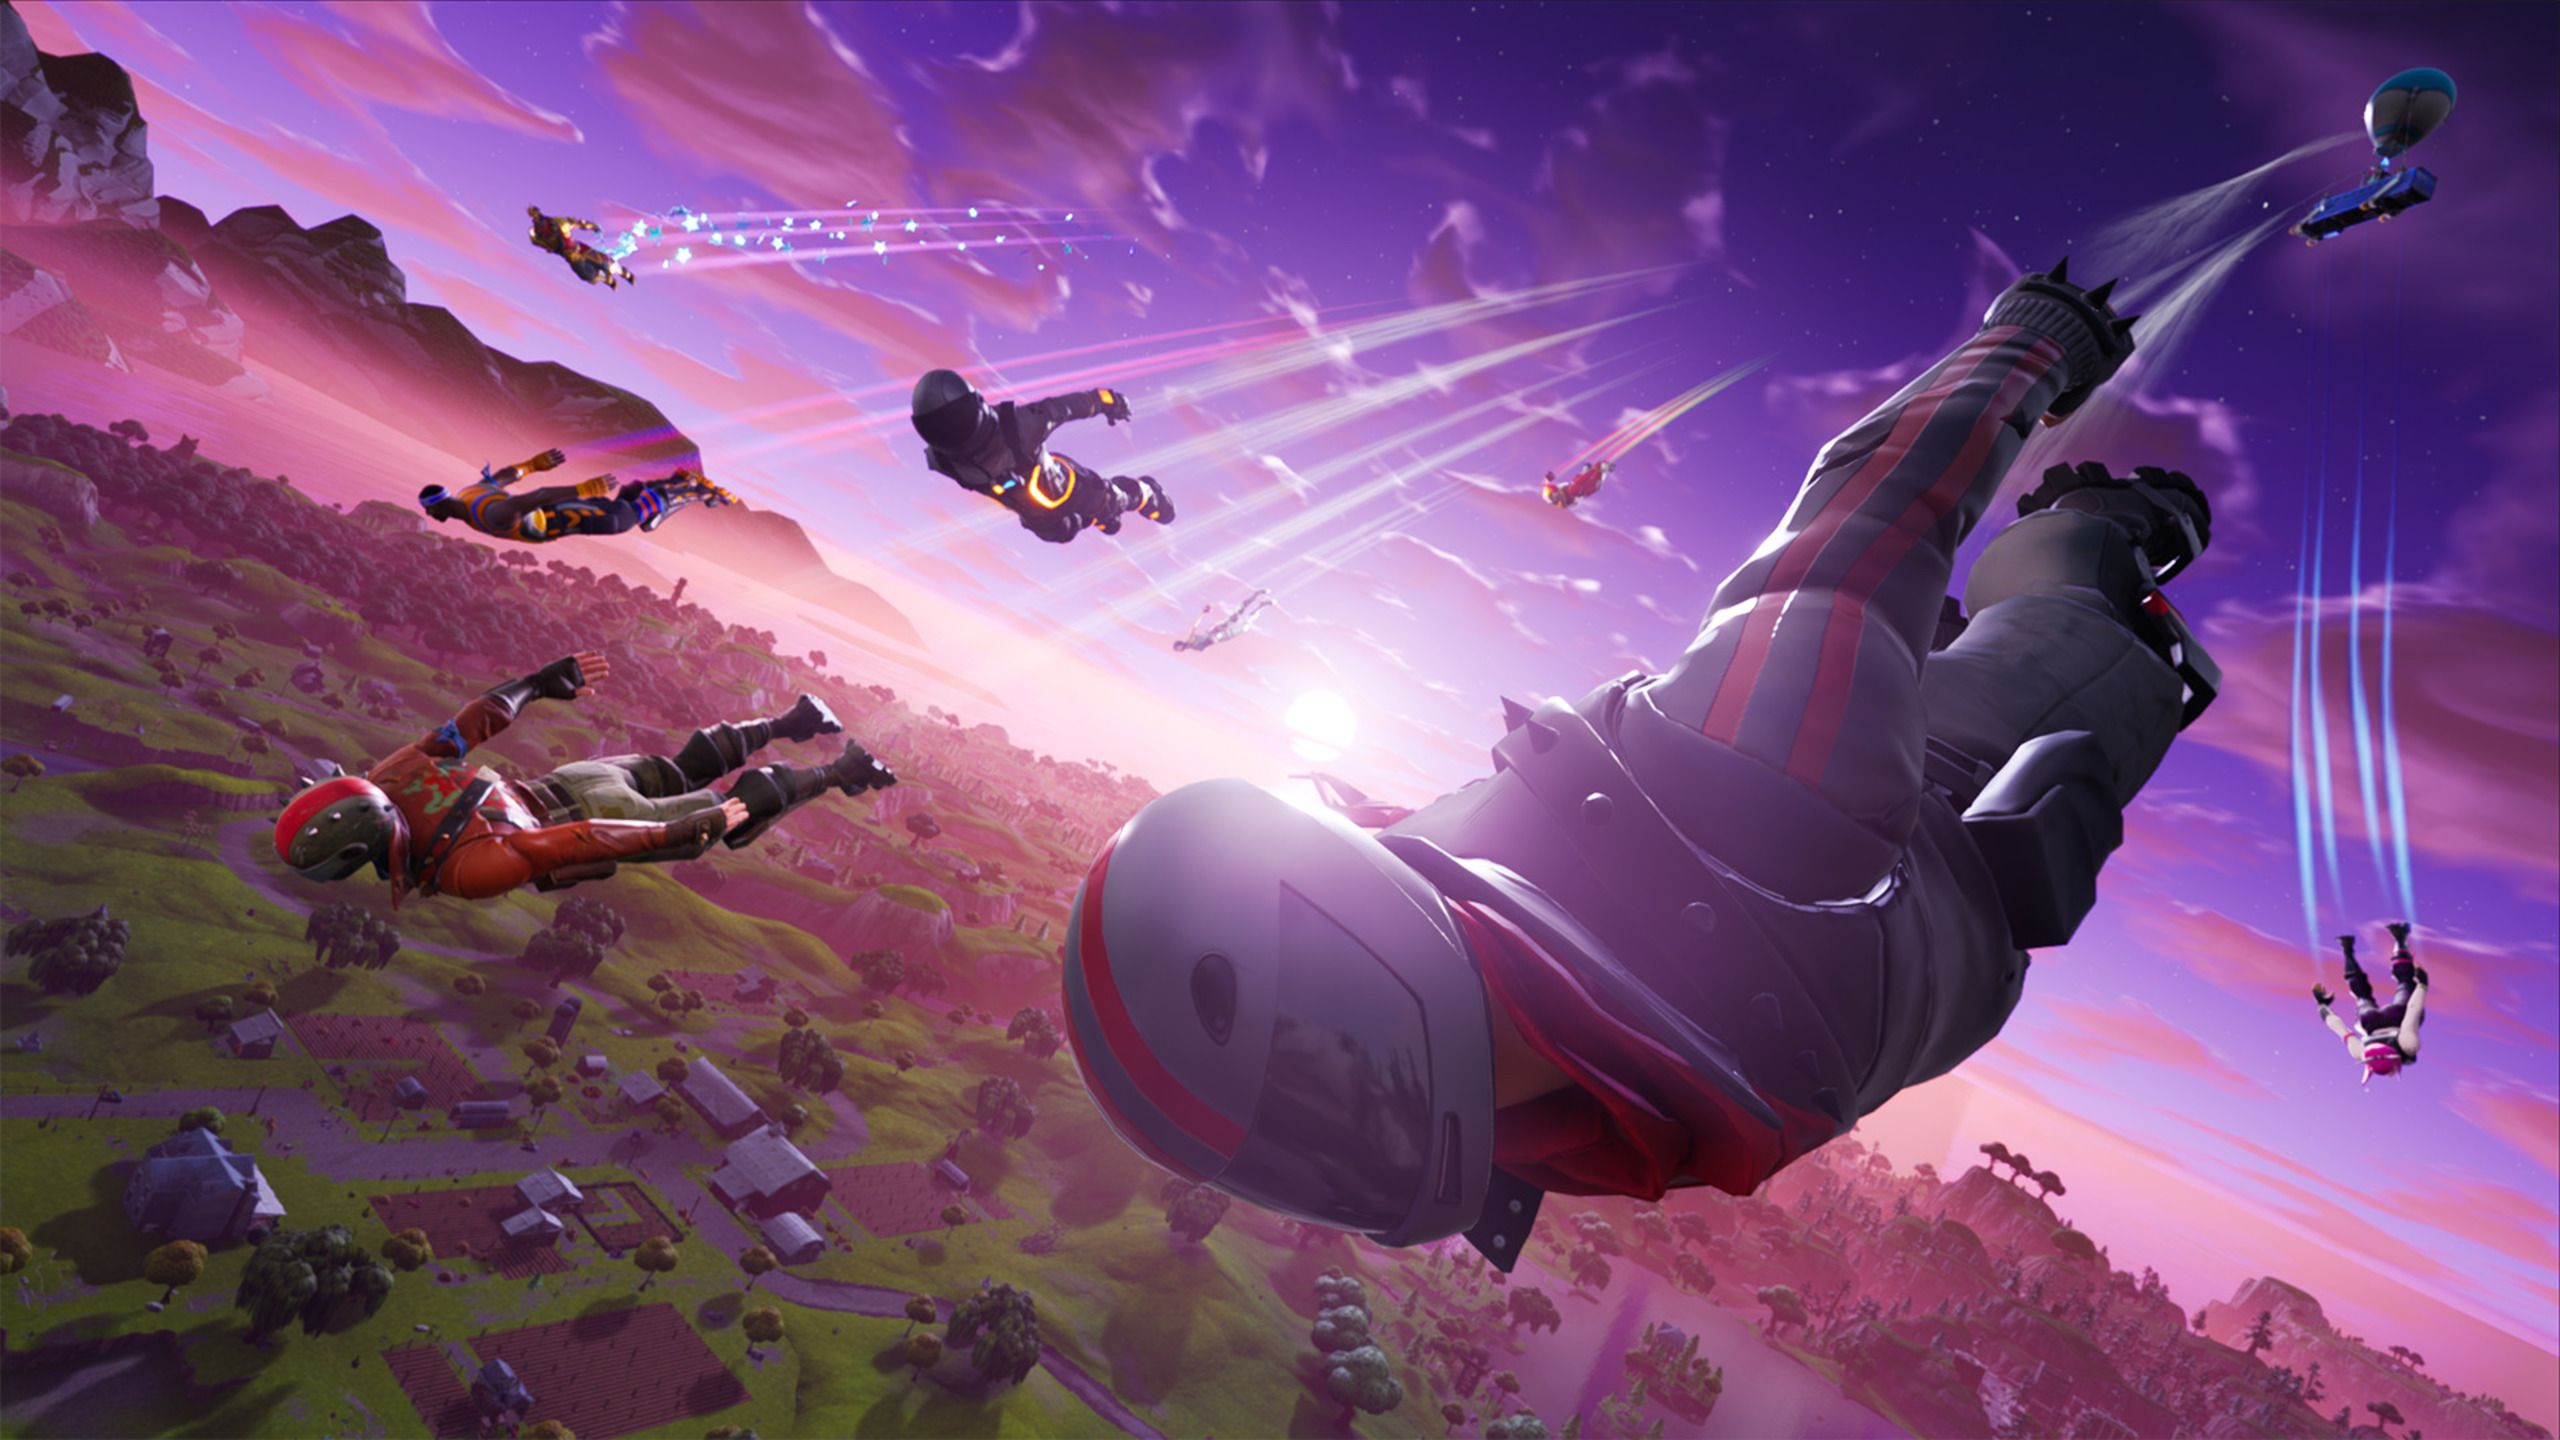 Fortnite Chapter 2 Season 2 Battle Pass Skins In 2020 With Images